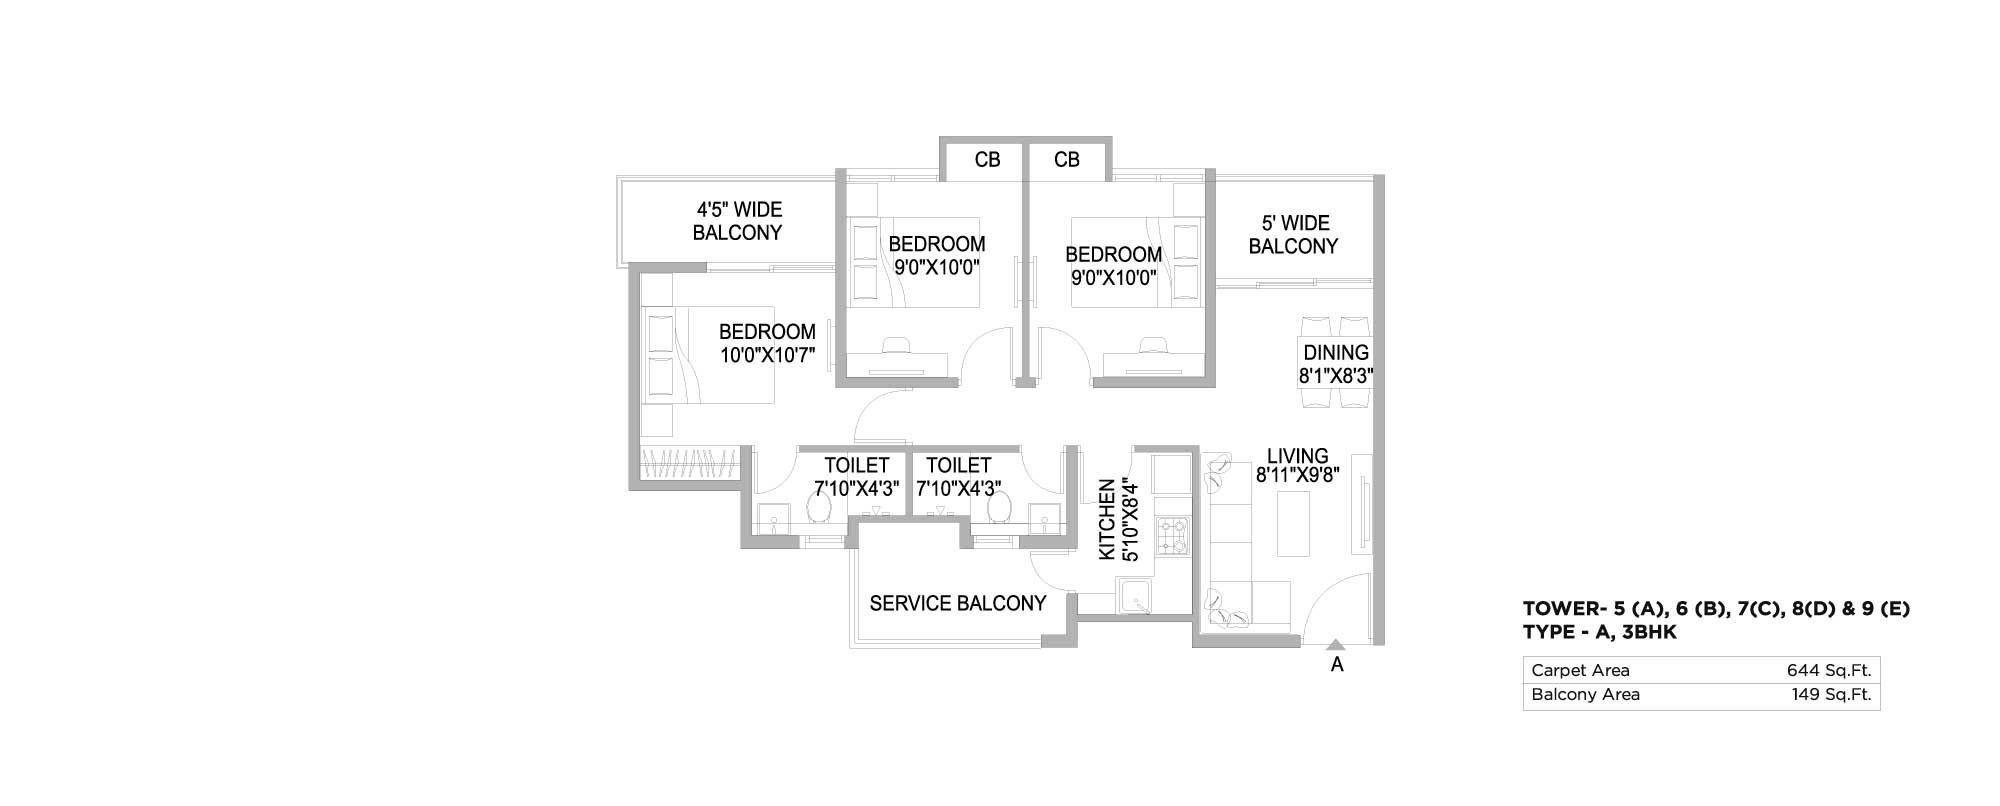 The 102 3 BHK 644 Sq. Ft.